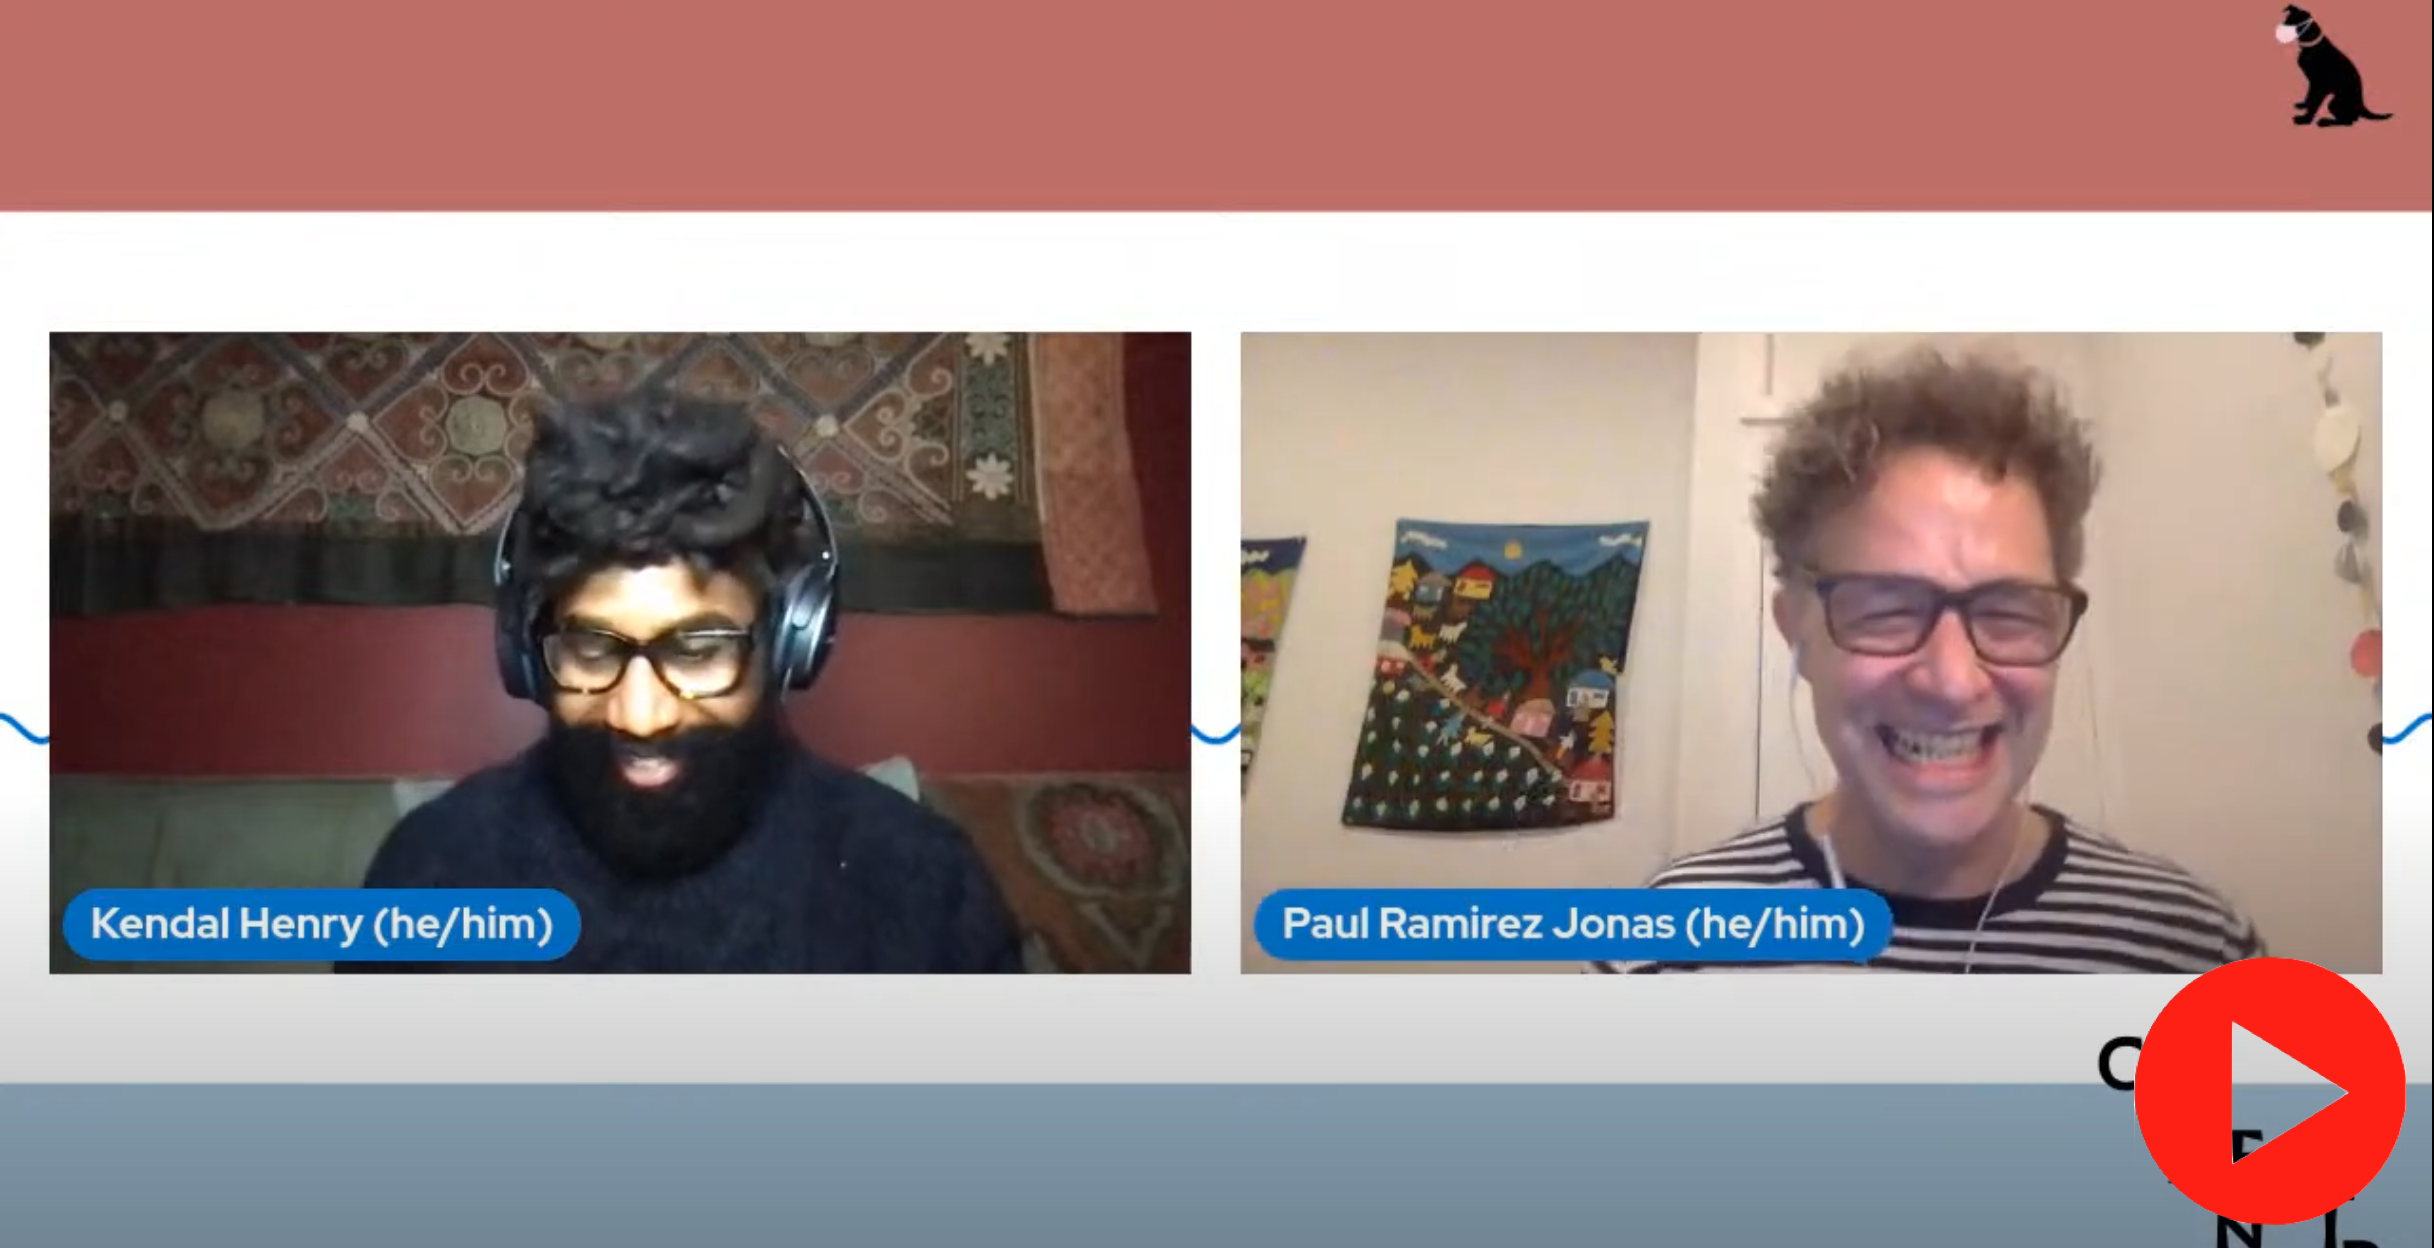 [Image description: Artists Kendal Henry and Paul Ramirez Jonas on a side by side screen as they are in conversation. They are against a red, white, and blue striped background. A red play button is in the bottom right corner.]